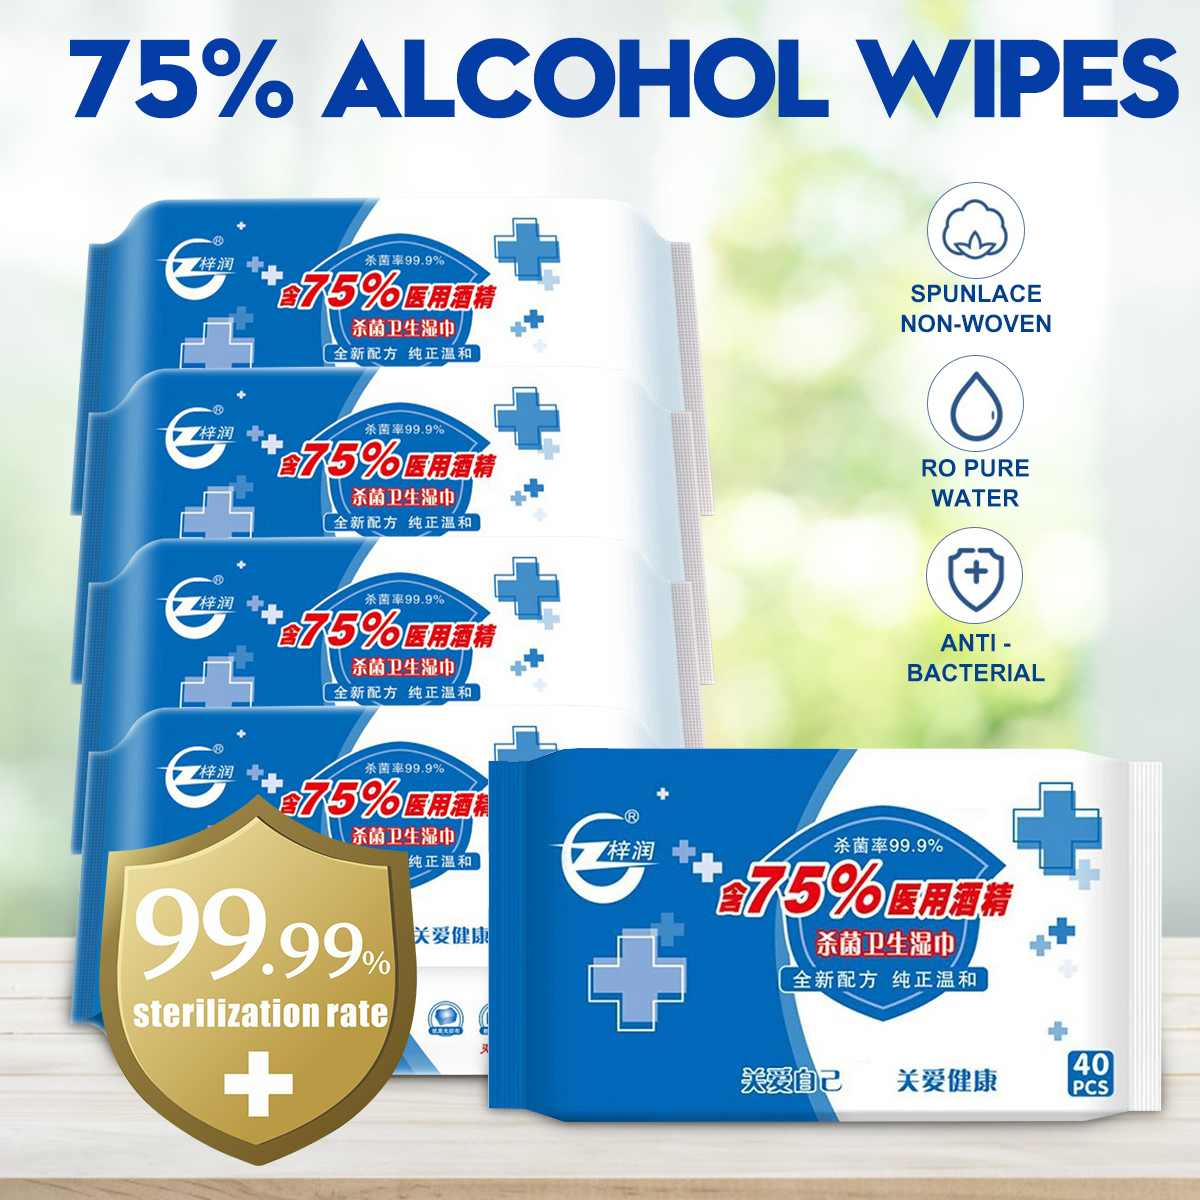 40Pcs/pack Alcohol Wet Wipes Disposable Disinfectant Wipes Antiseptic Skin Cleanser Sterilization Jewelry Mobile Phone Cleaning